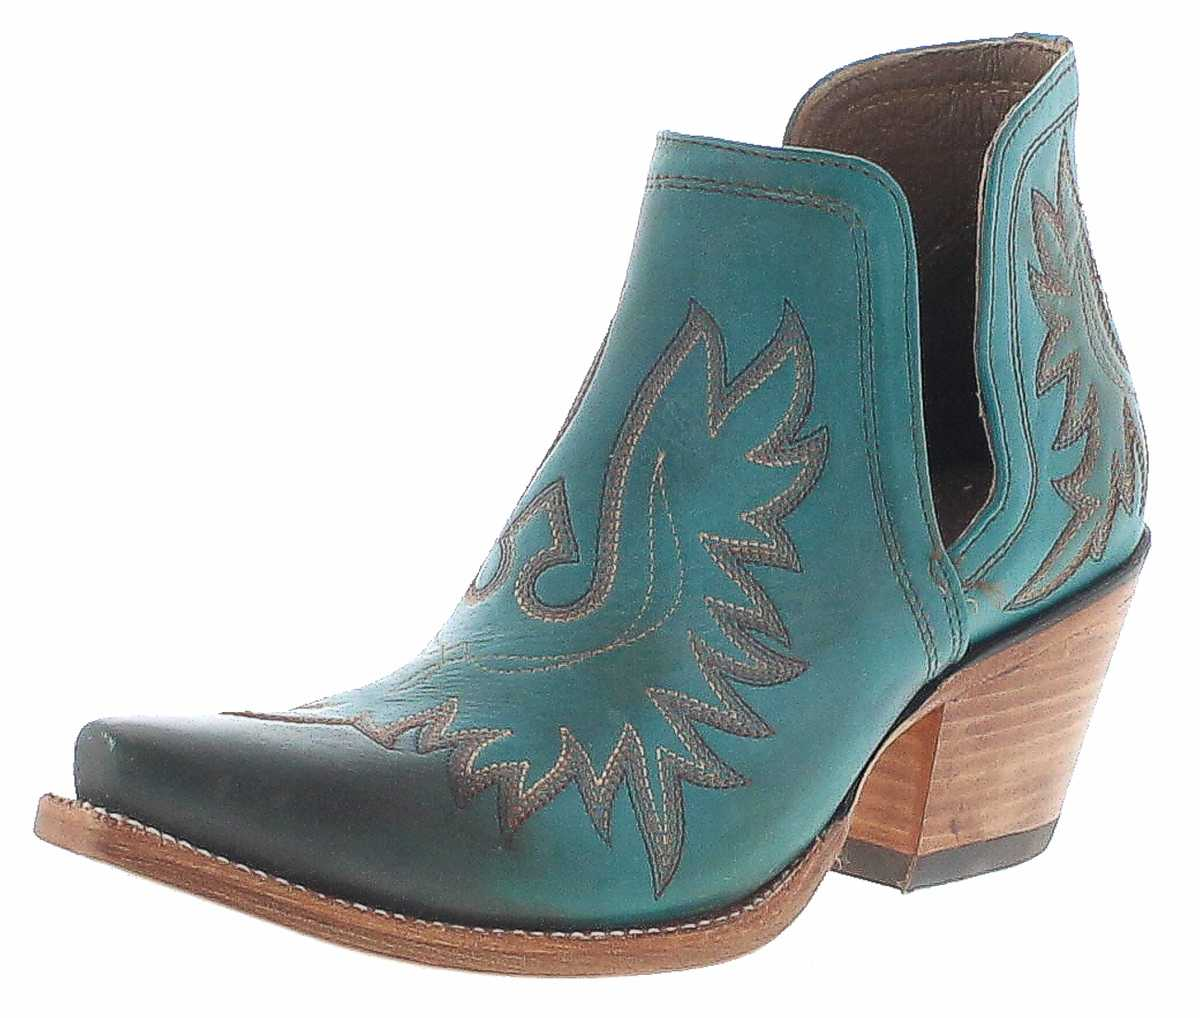 Ariat 27280 DIXON Agate Green Ankle boots ladies - green